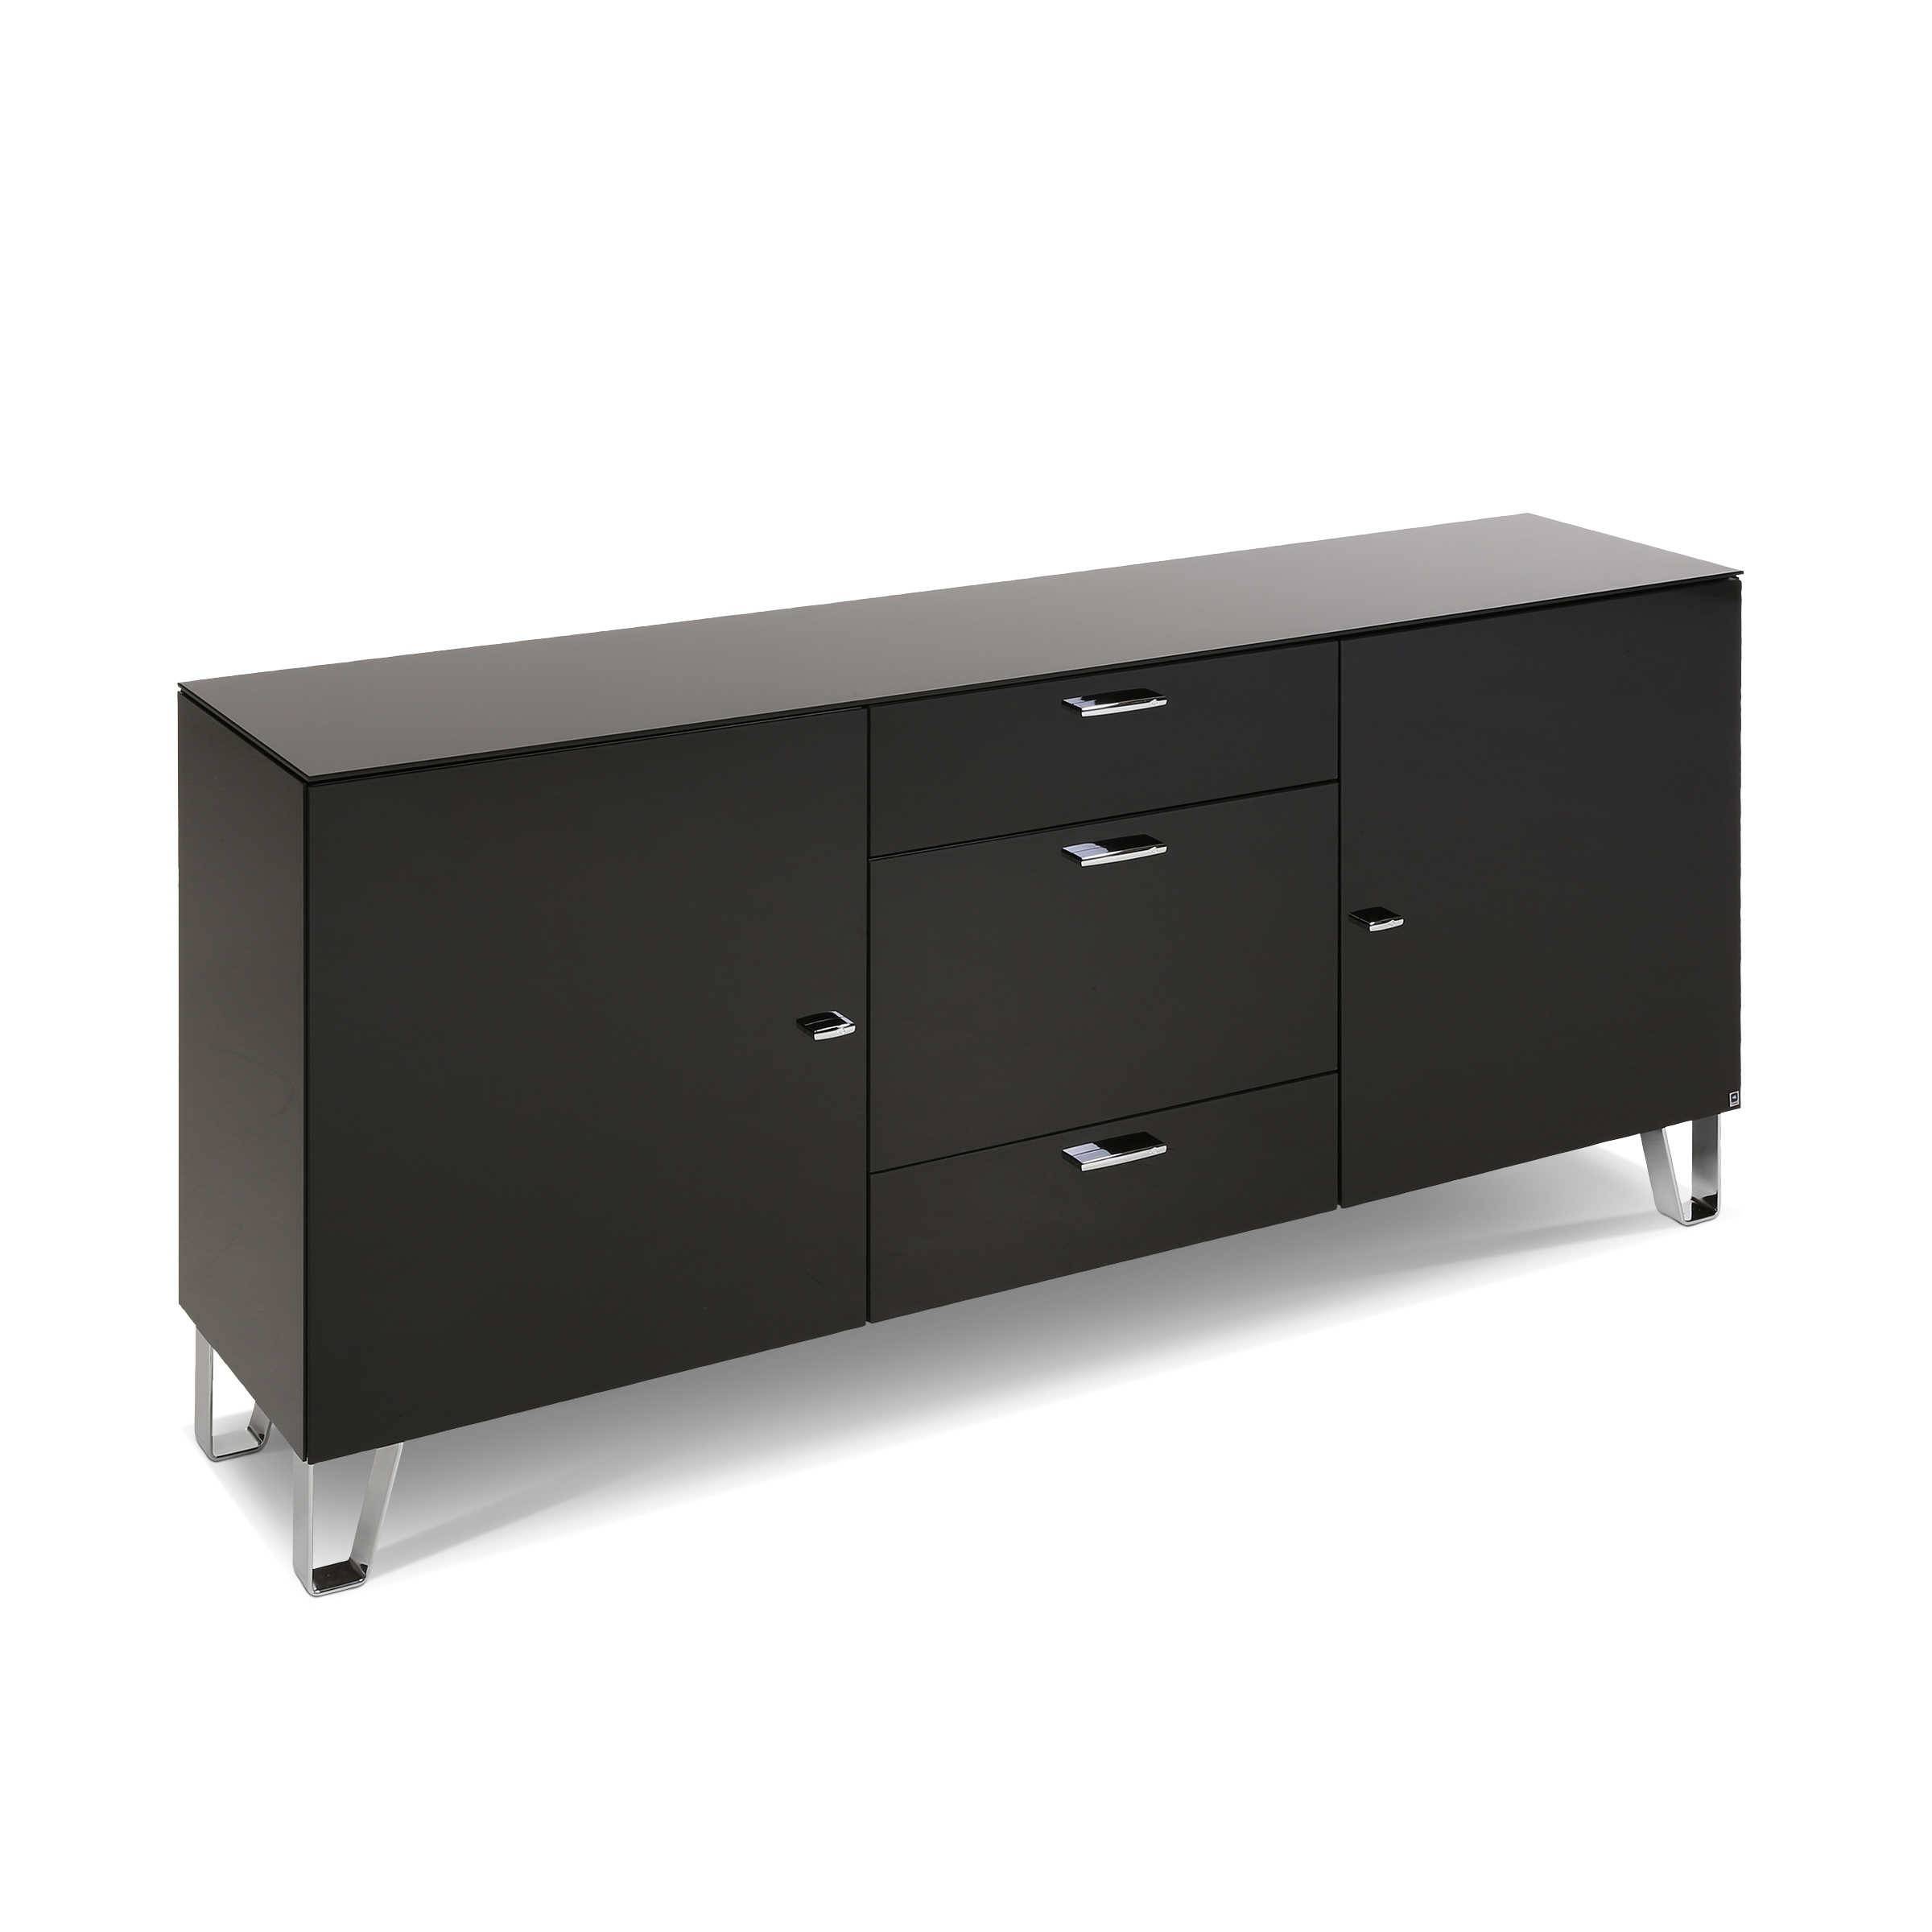 leonardo living sideboard cube schwarz glas online kaufen bei woonio. Black Bedroom Furniture Sets. Home Design Ideas